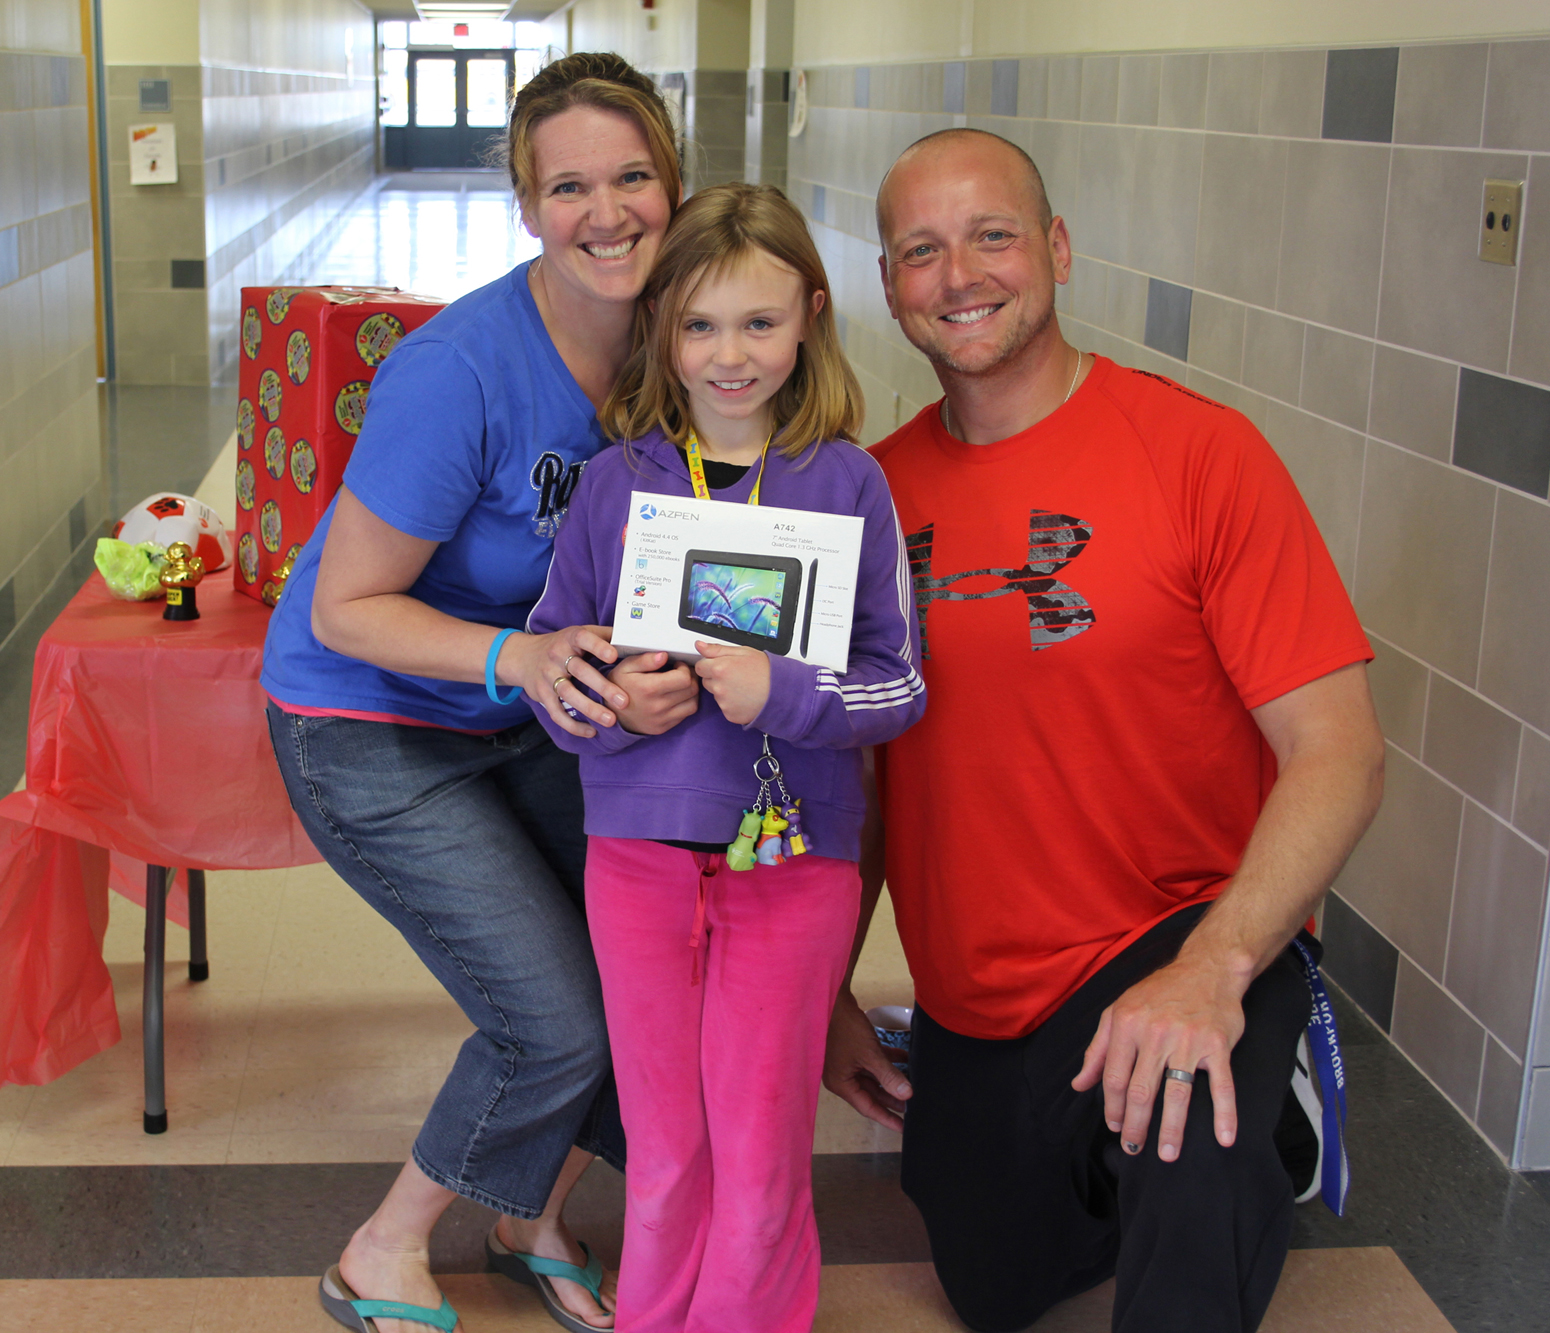 Third-grade student Ada Miller accepts a tablet presented by physical education  teachers Erin Waite and Phillip Thore. Provided photo